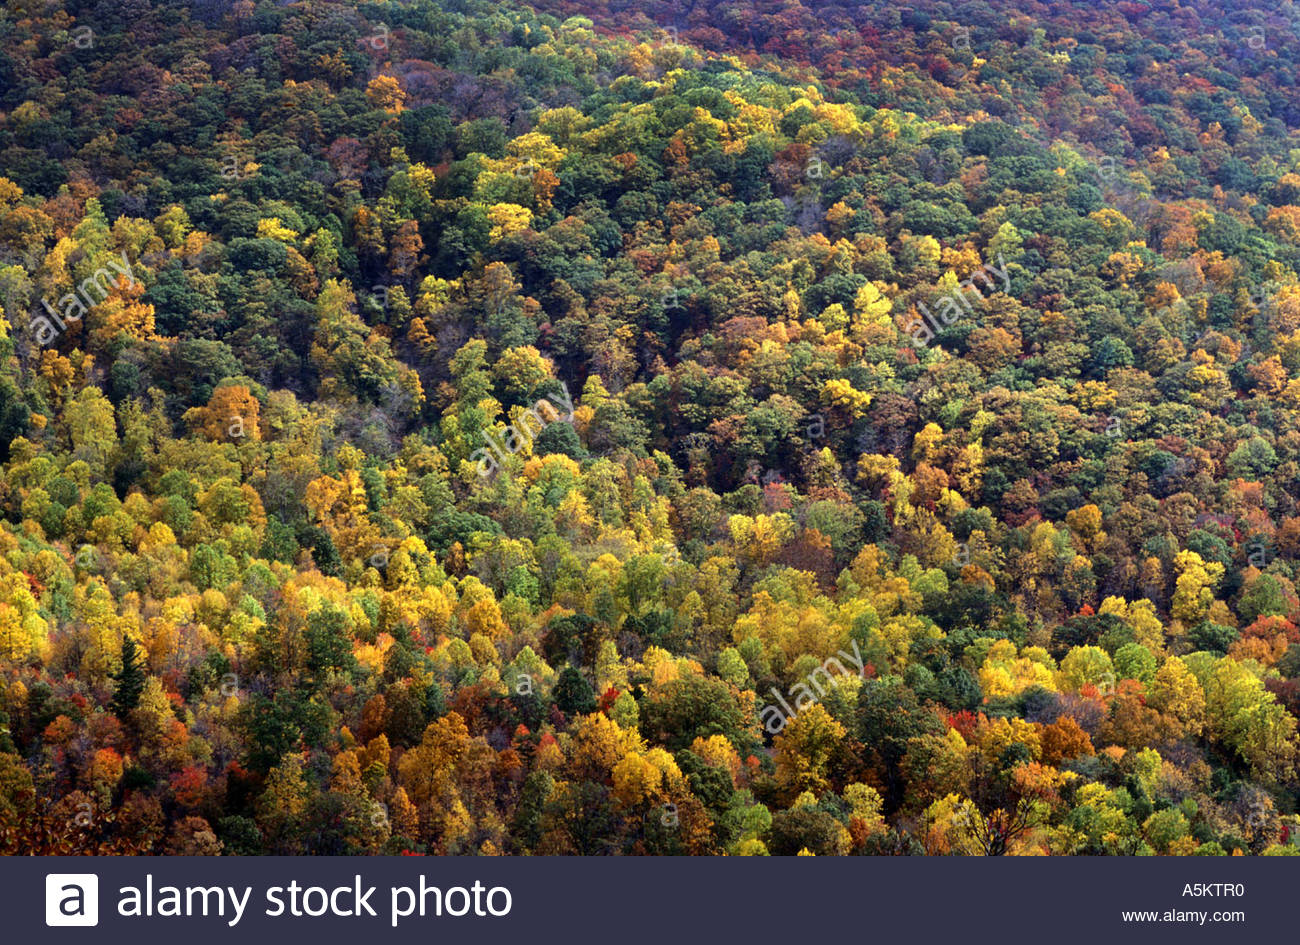 A background of autumn colored trees from the fall in Asheville NC 1300x945